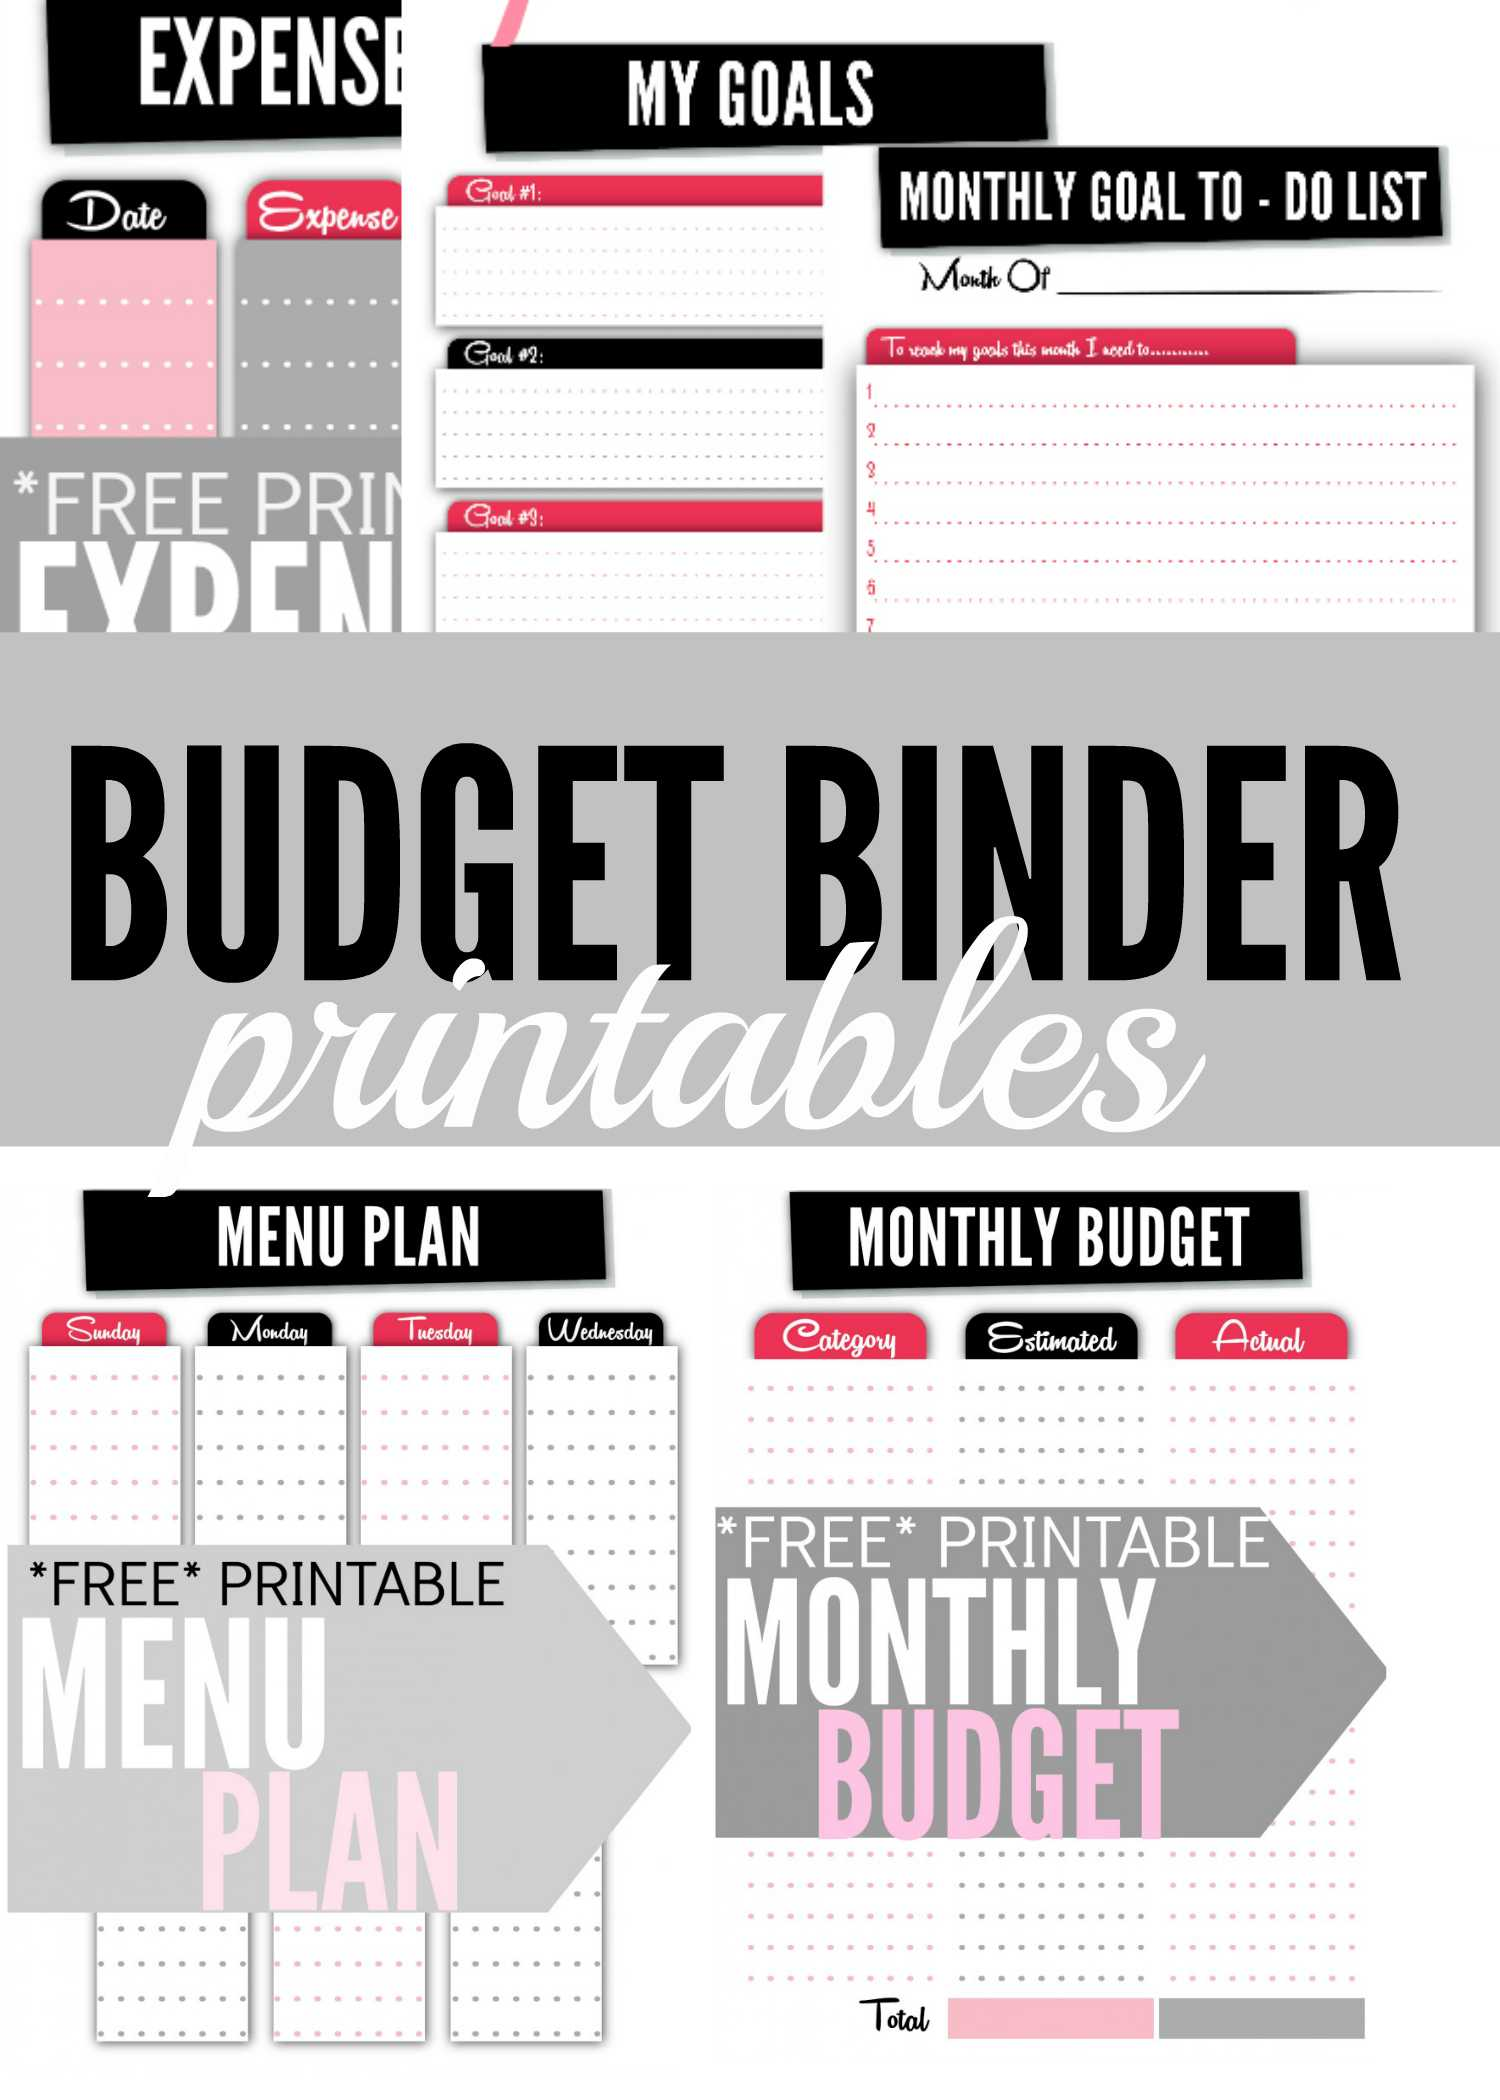 Free Printable Budget Binder Worksheets or Bud Worksheet Printable Binder Worksheets Free Concept 2018